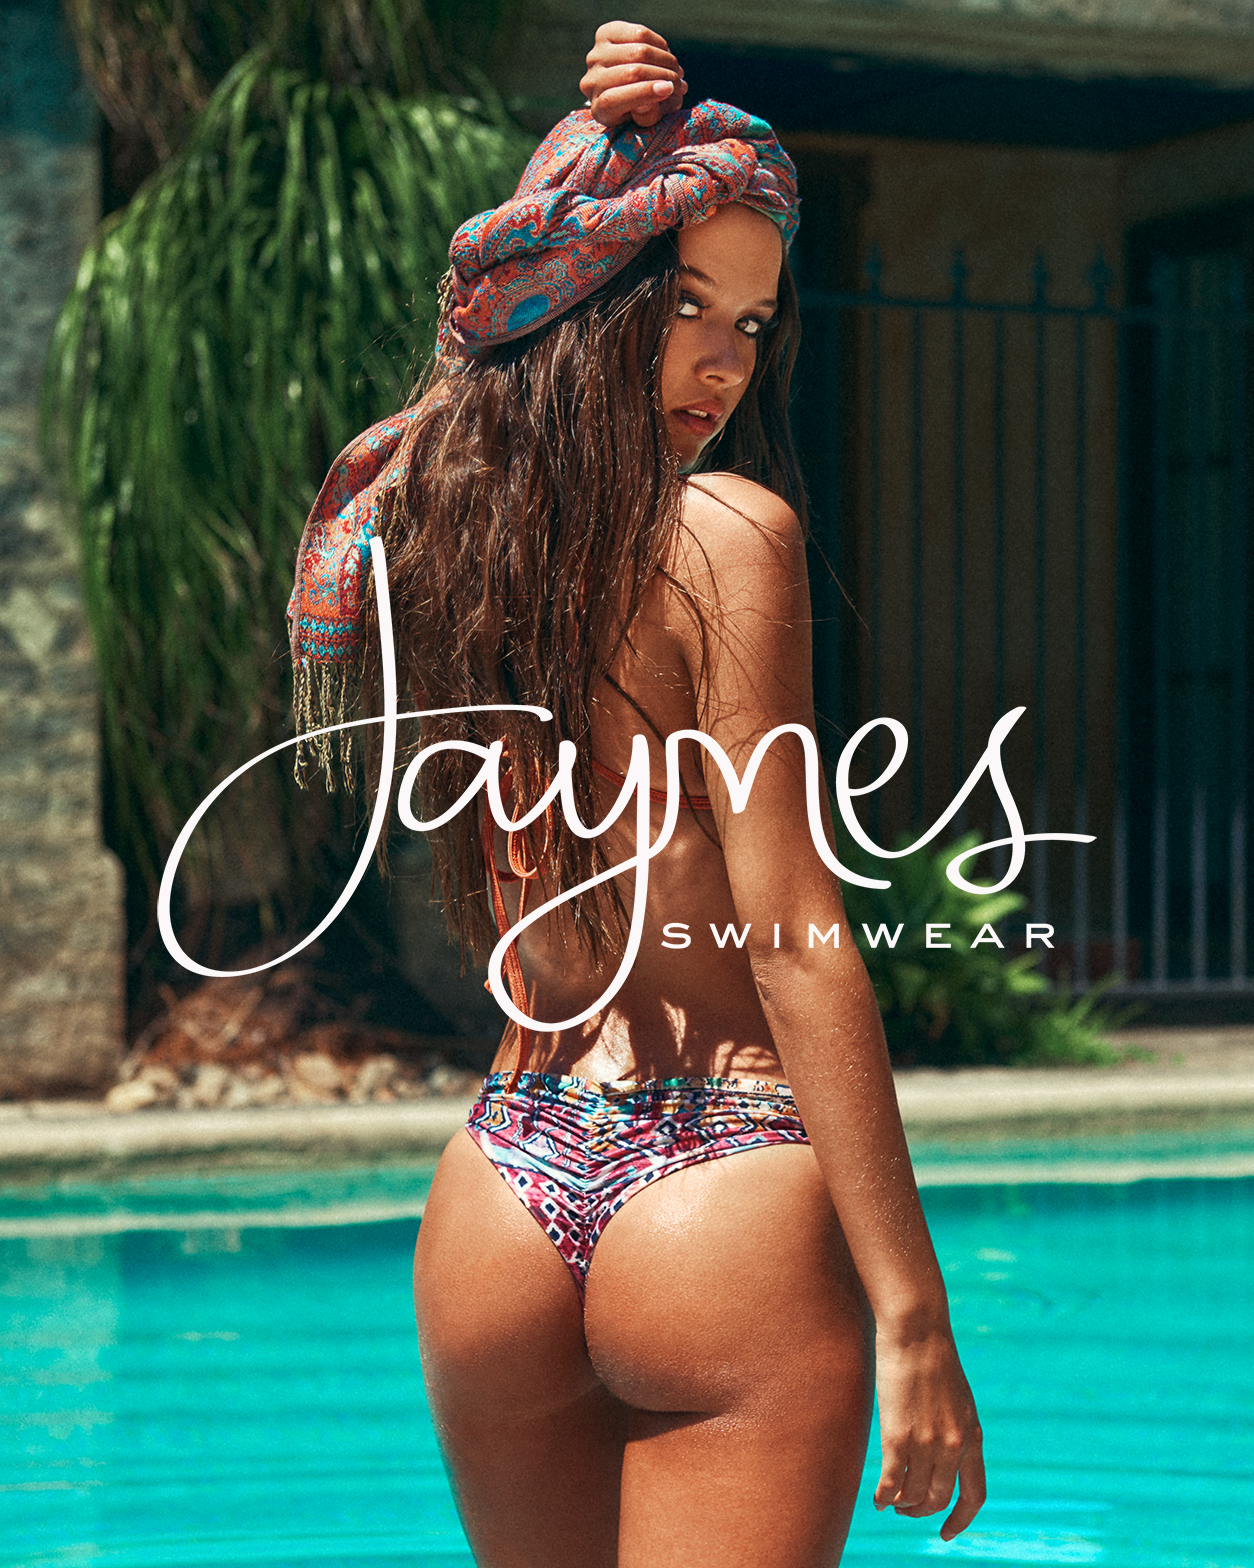 Jaymes Swimwear SS/16  Isabelle Mathers QUE Models  HMU- Mia Connor Styling- Jamie Allen  Shot on location In Byron Bay